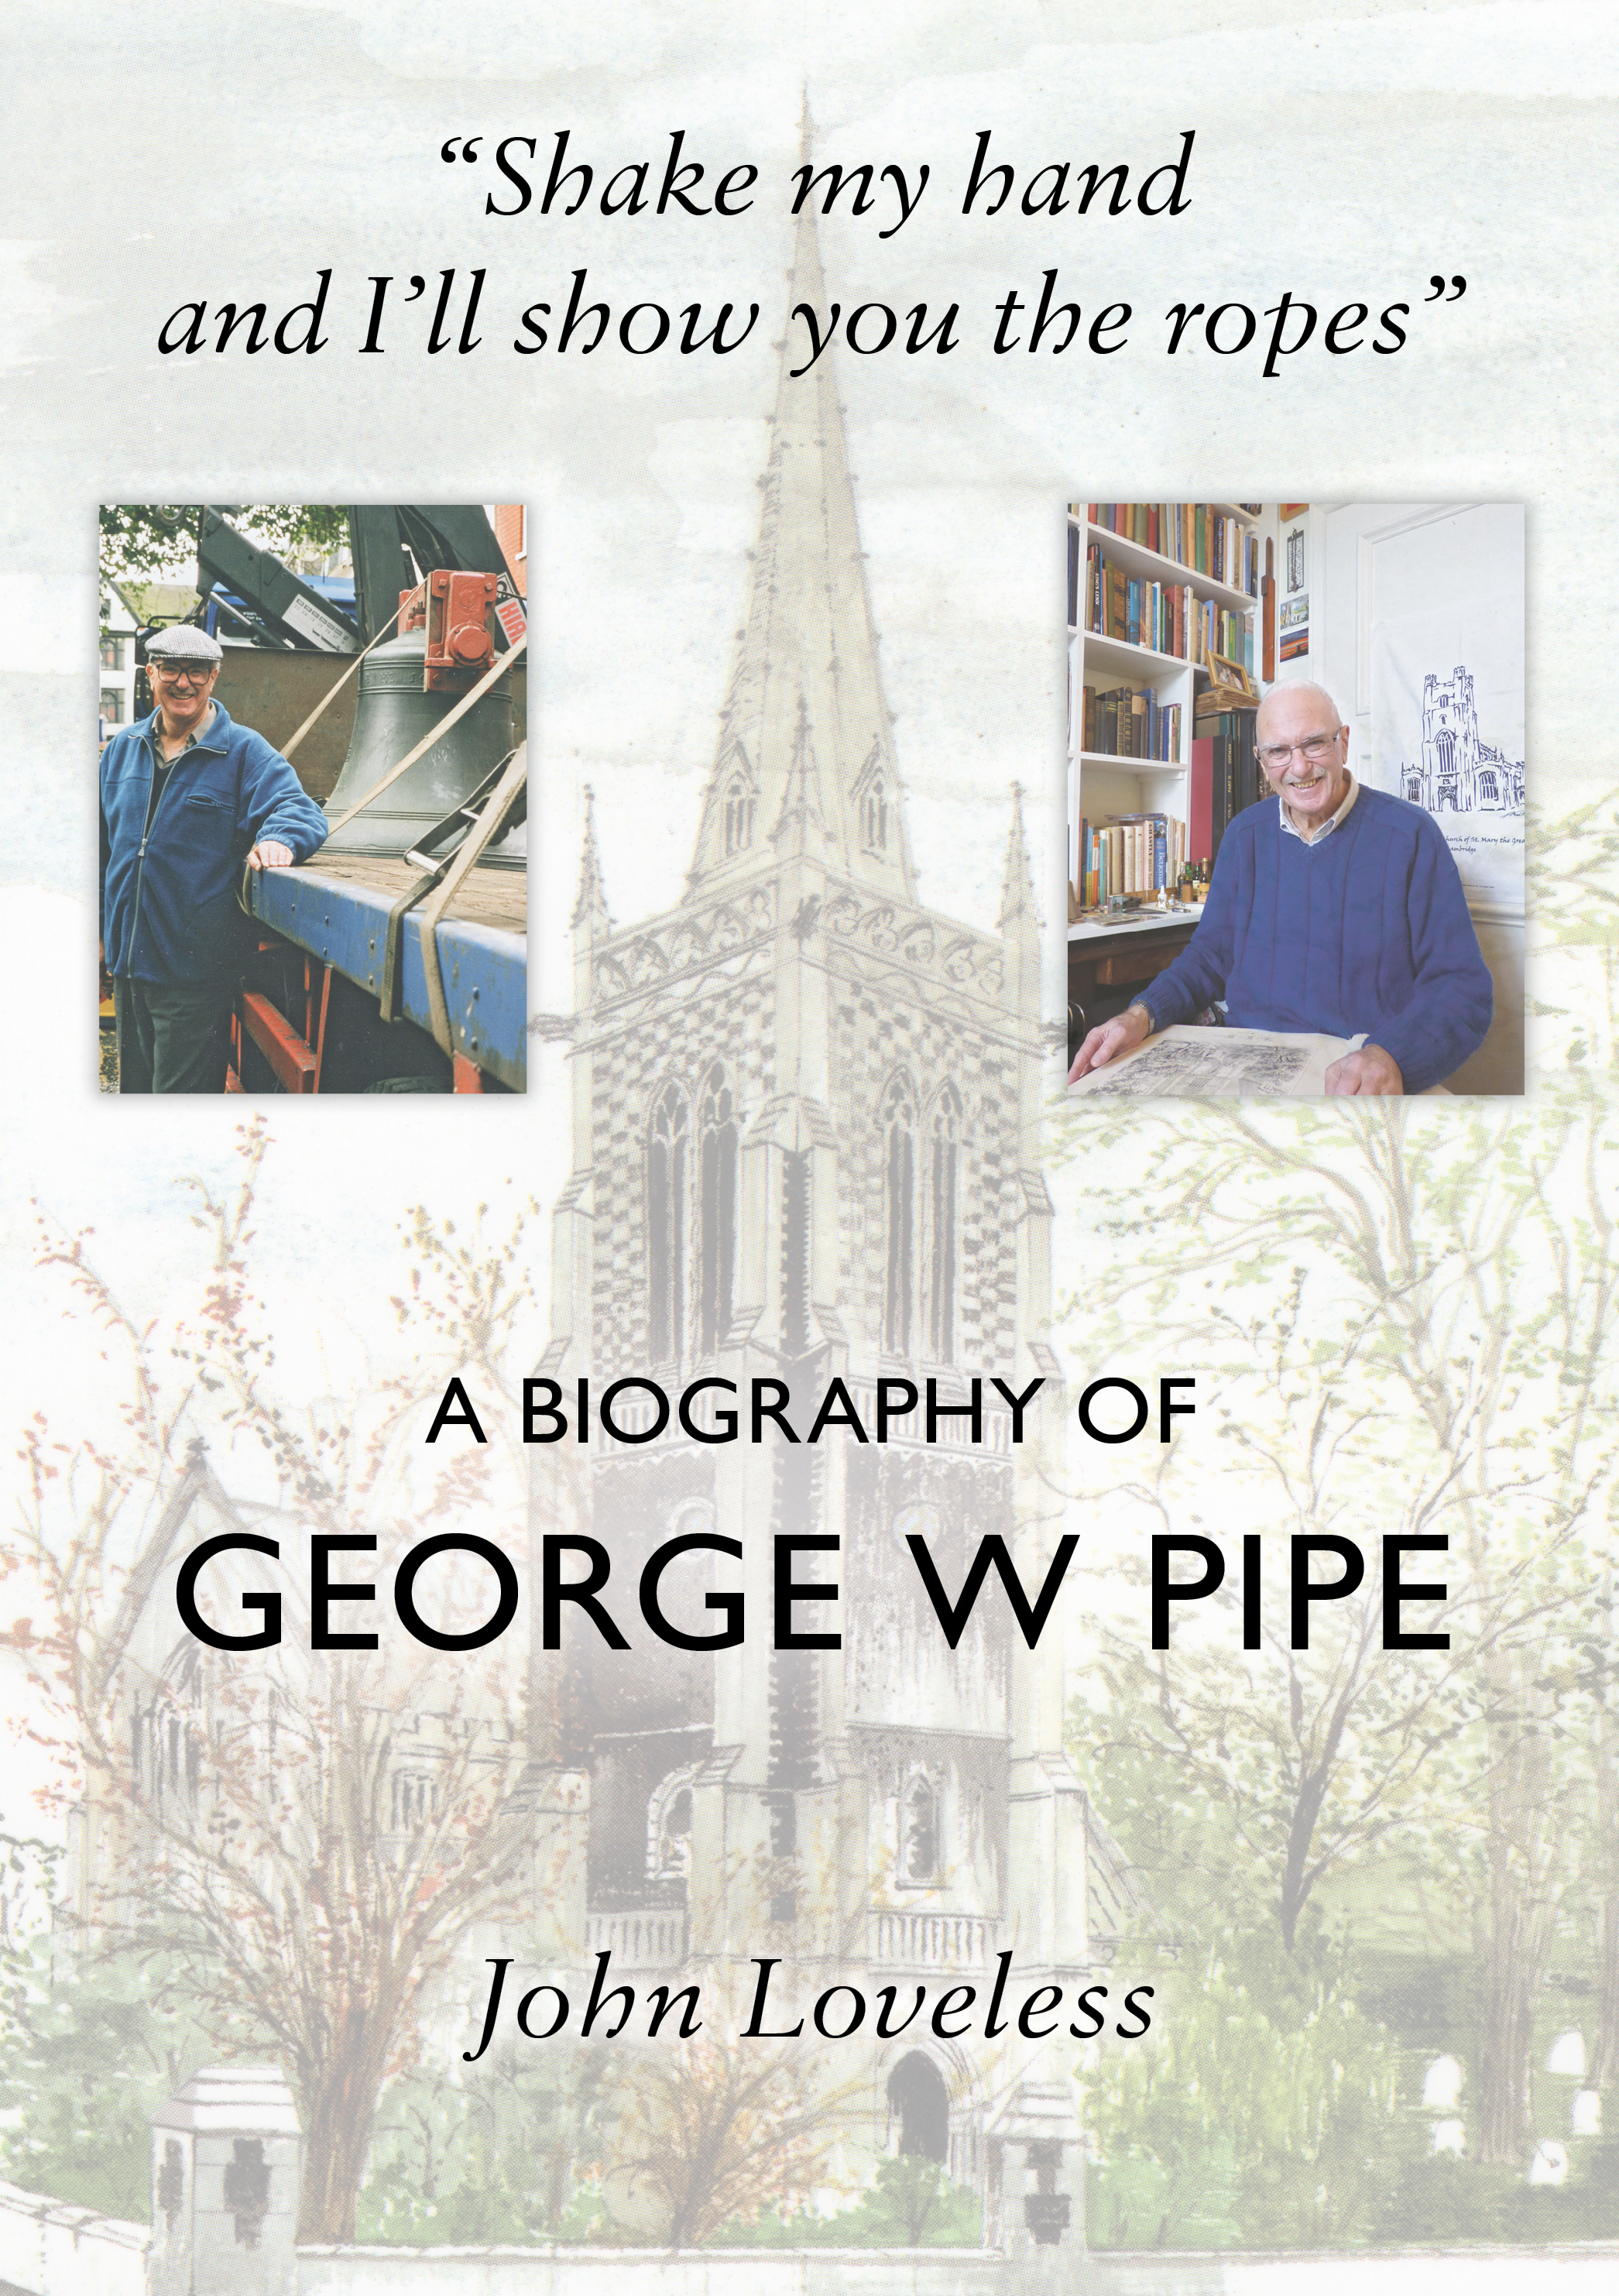 A Biography of George Pipe